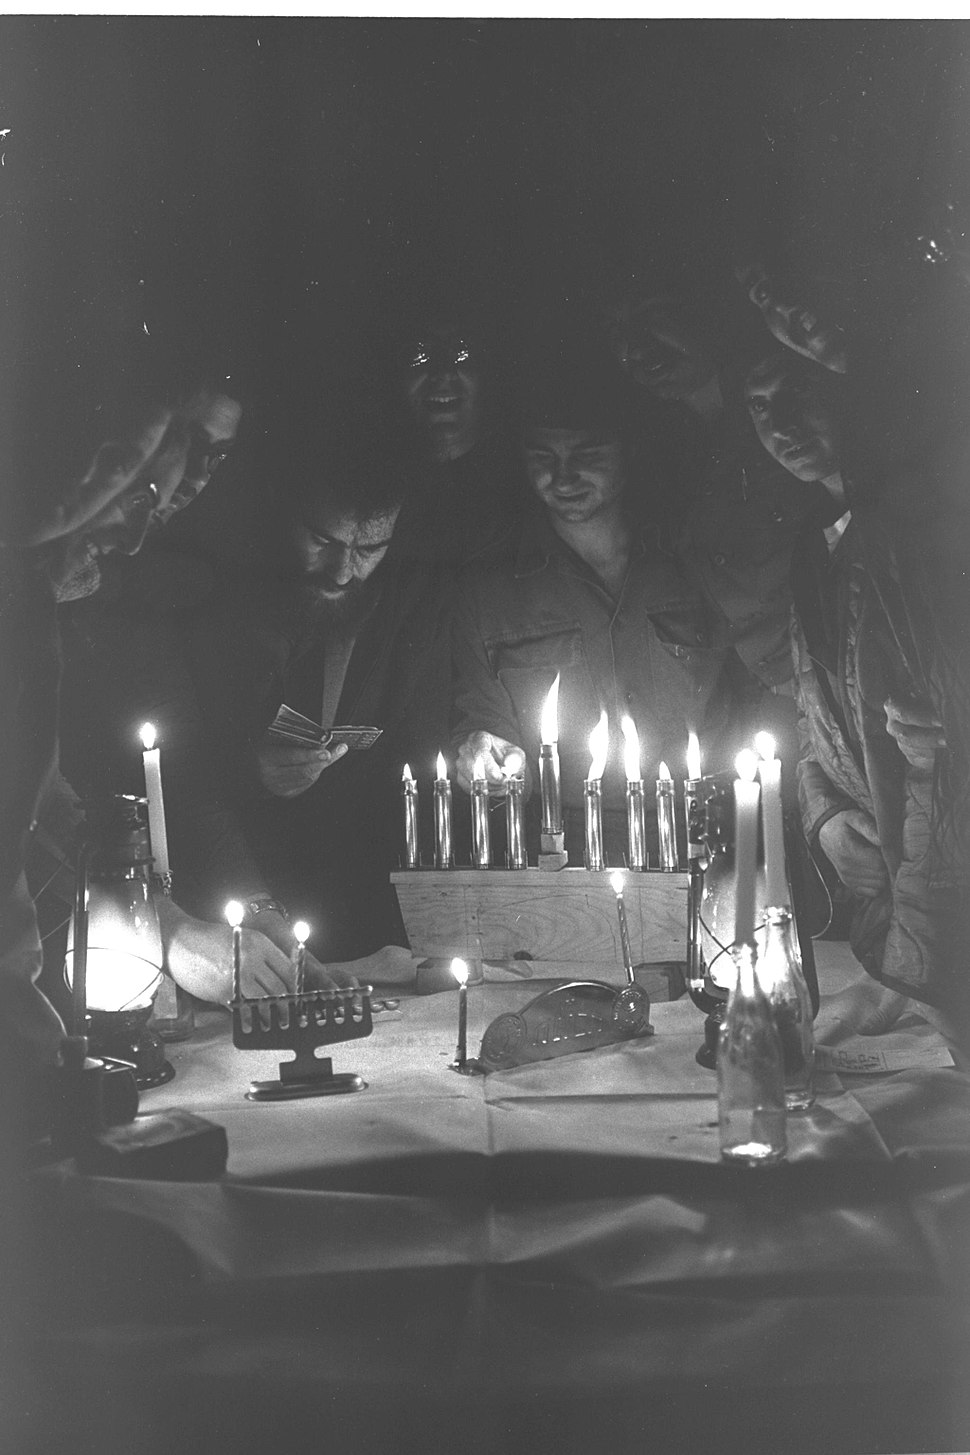 Flickr - Government Press Office (GPO) - soldiers lighting the Hanuka candles during Yom Kippur war